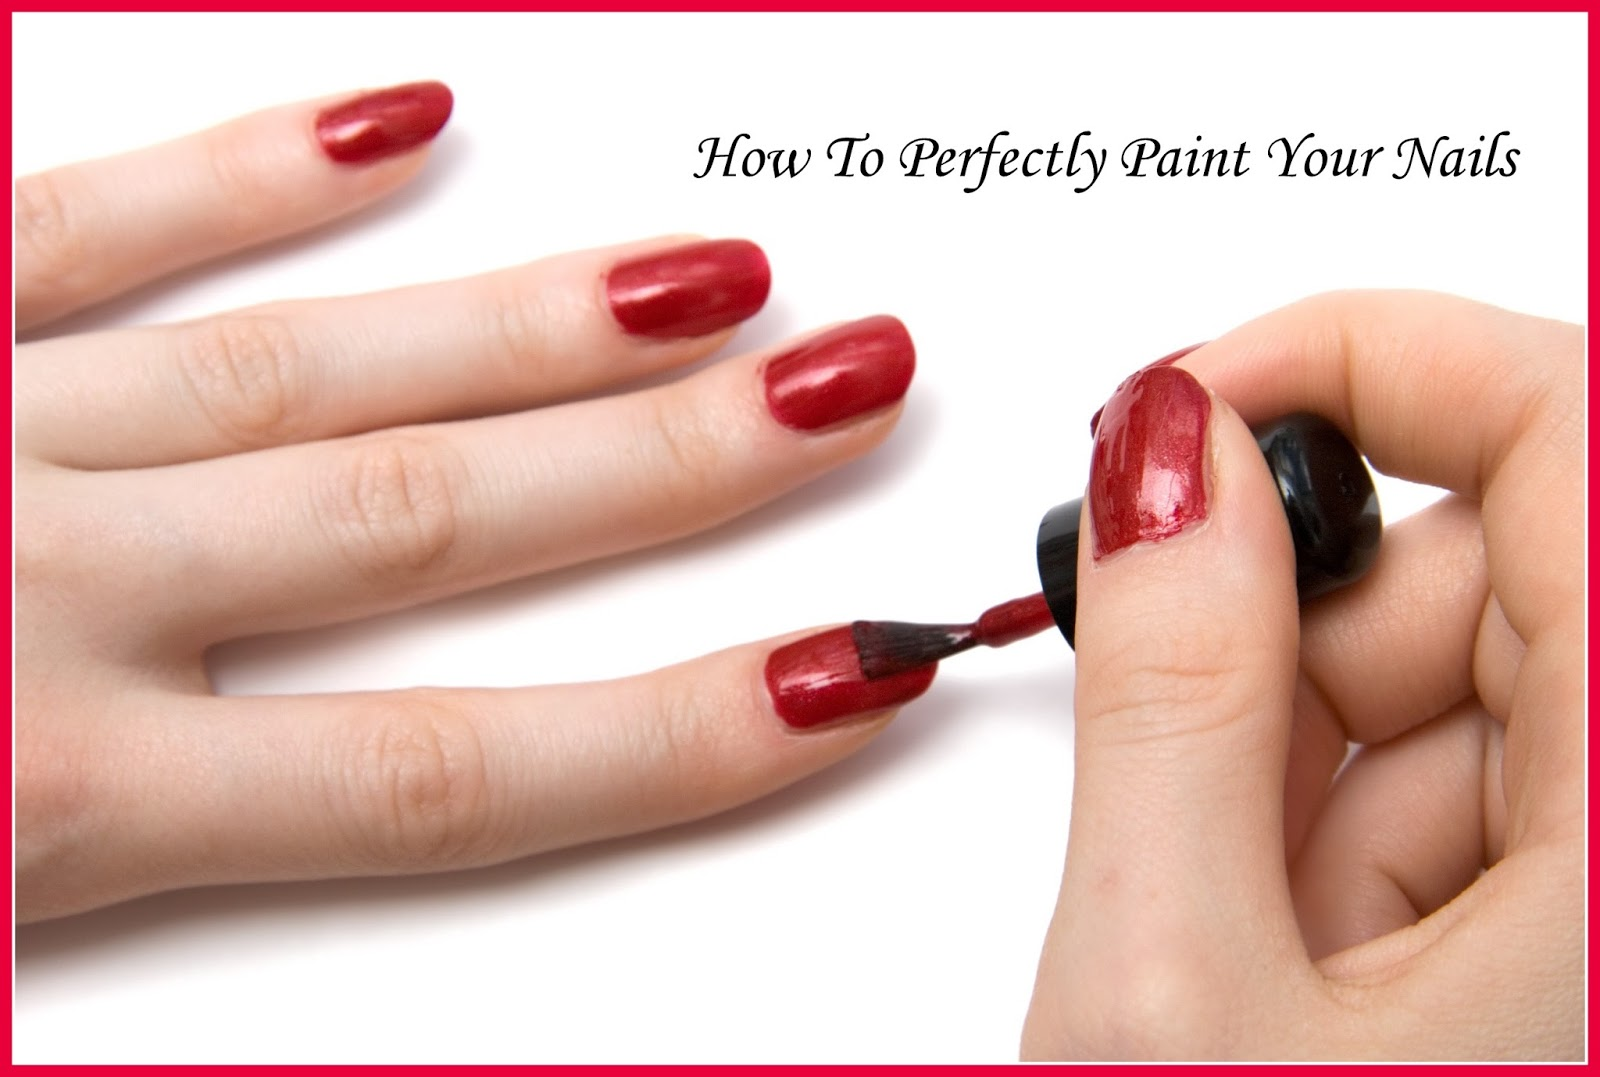 KhushiWorld: How To Perfectly Paint Your Nails